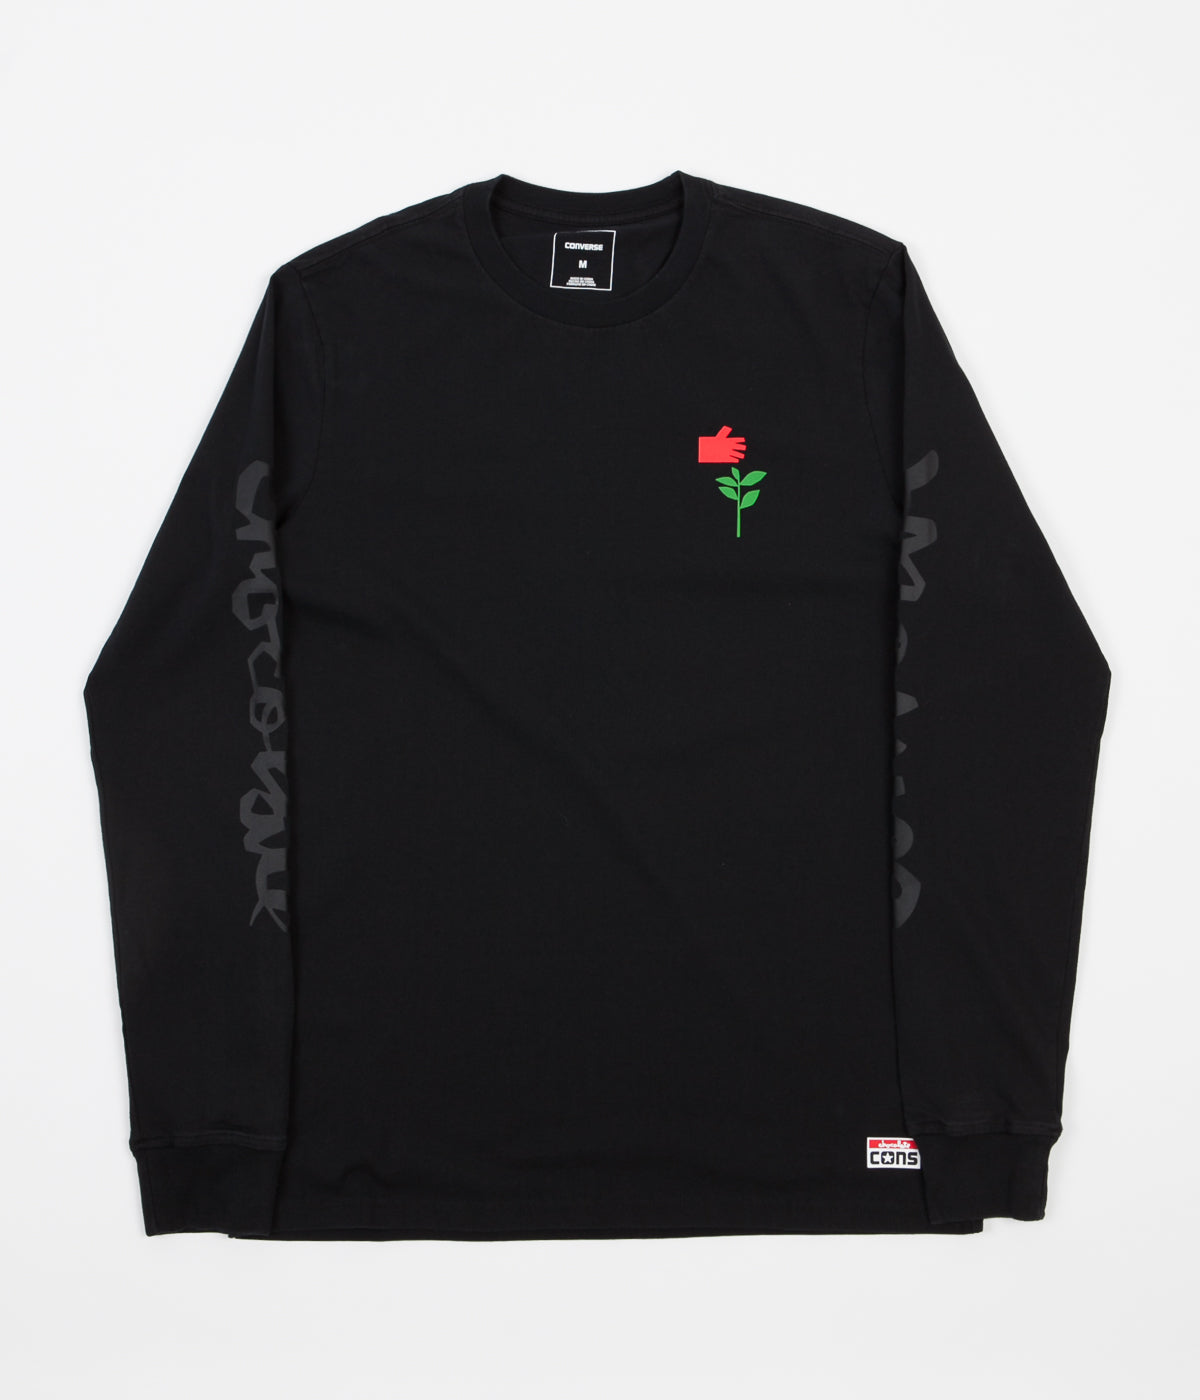 Converse x Chocolate Long Sleeve T-Shirt - Black